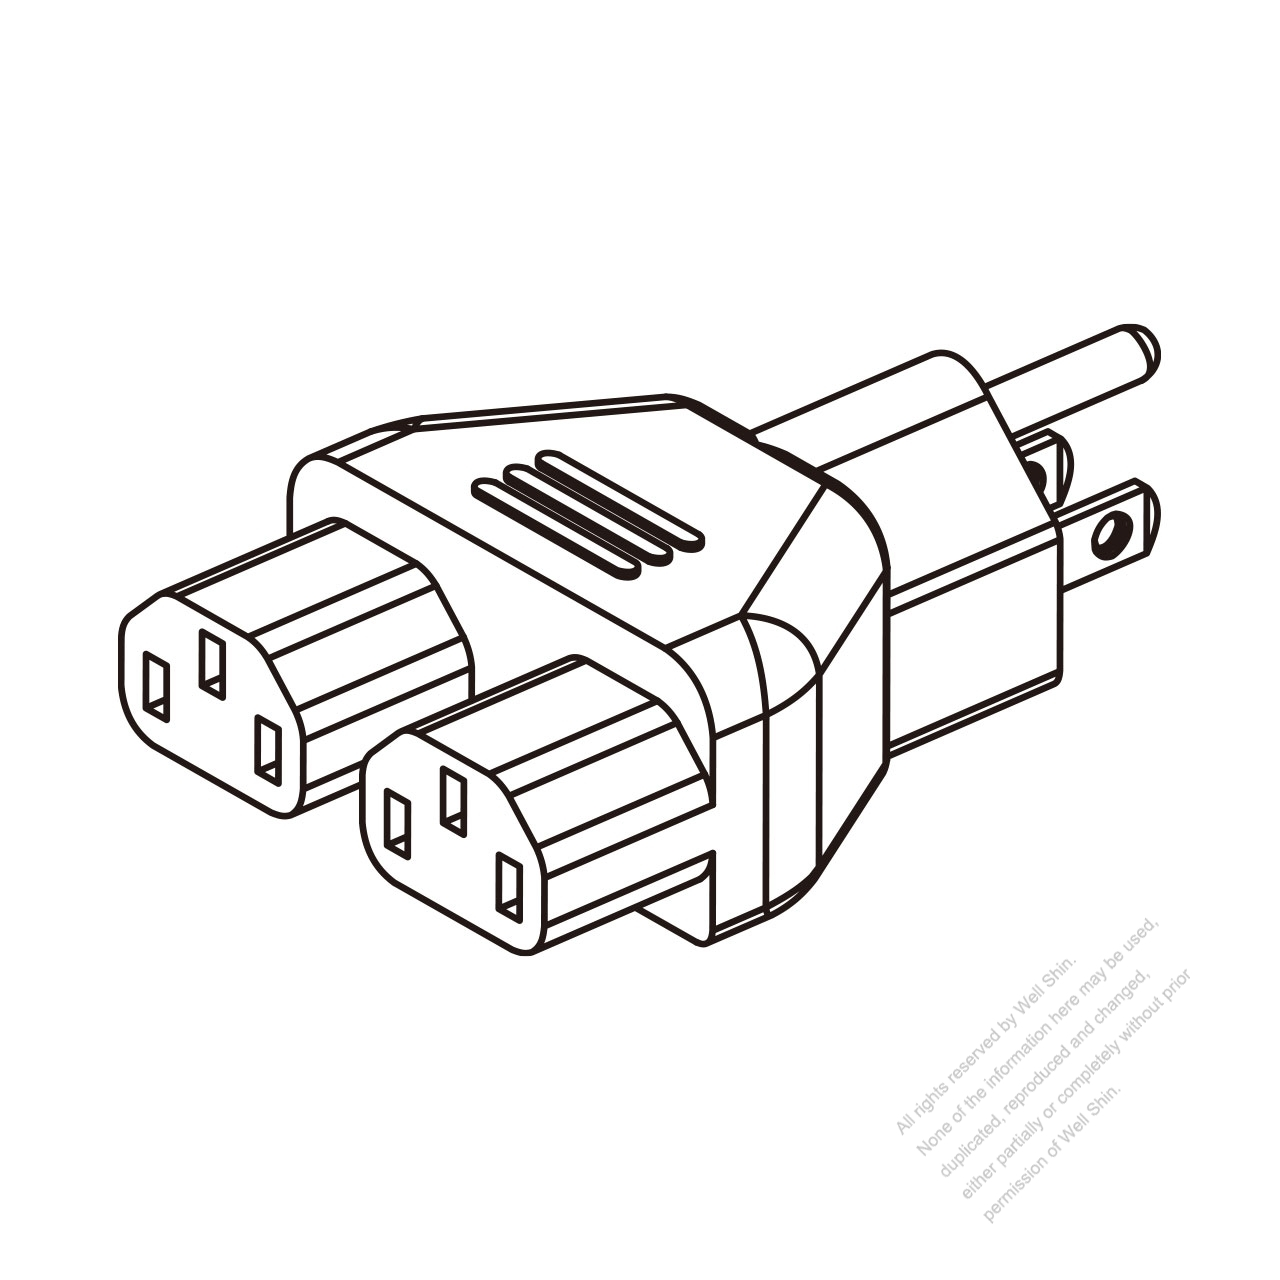 Adapter Plug Nema 5 15p To Iec 320 C13 X 2 3 To 3 Pin